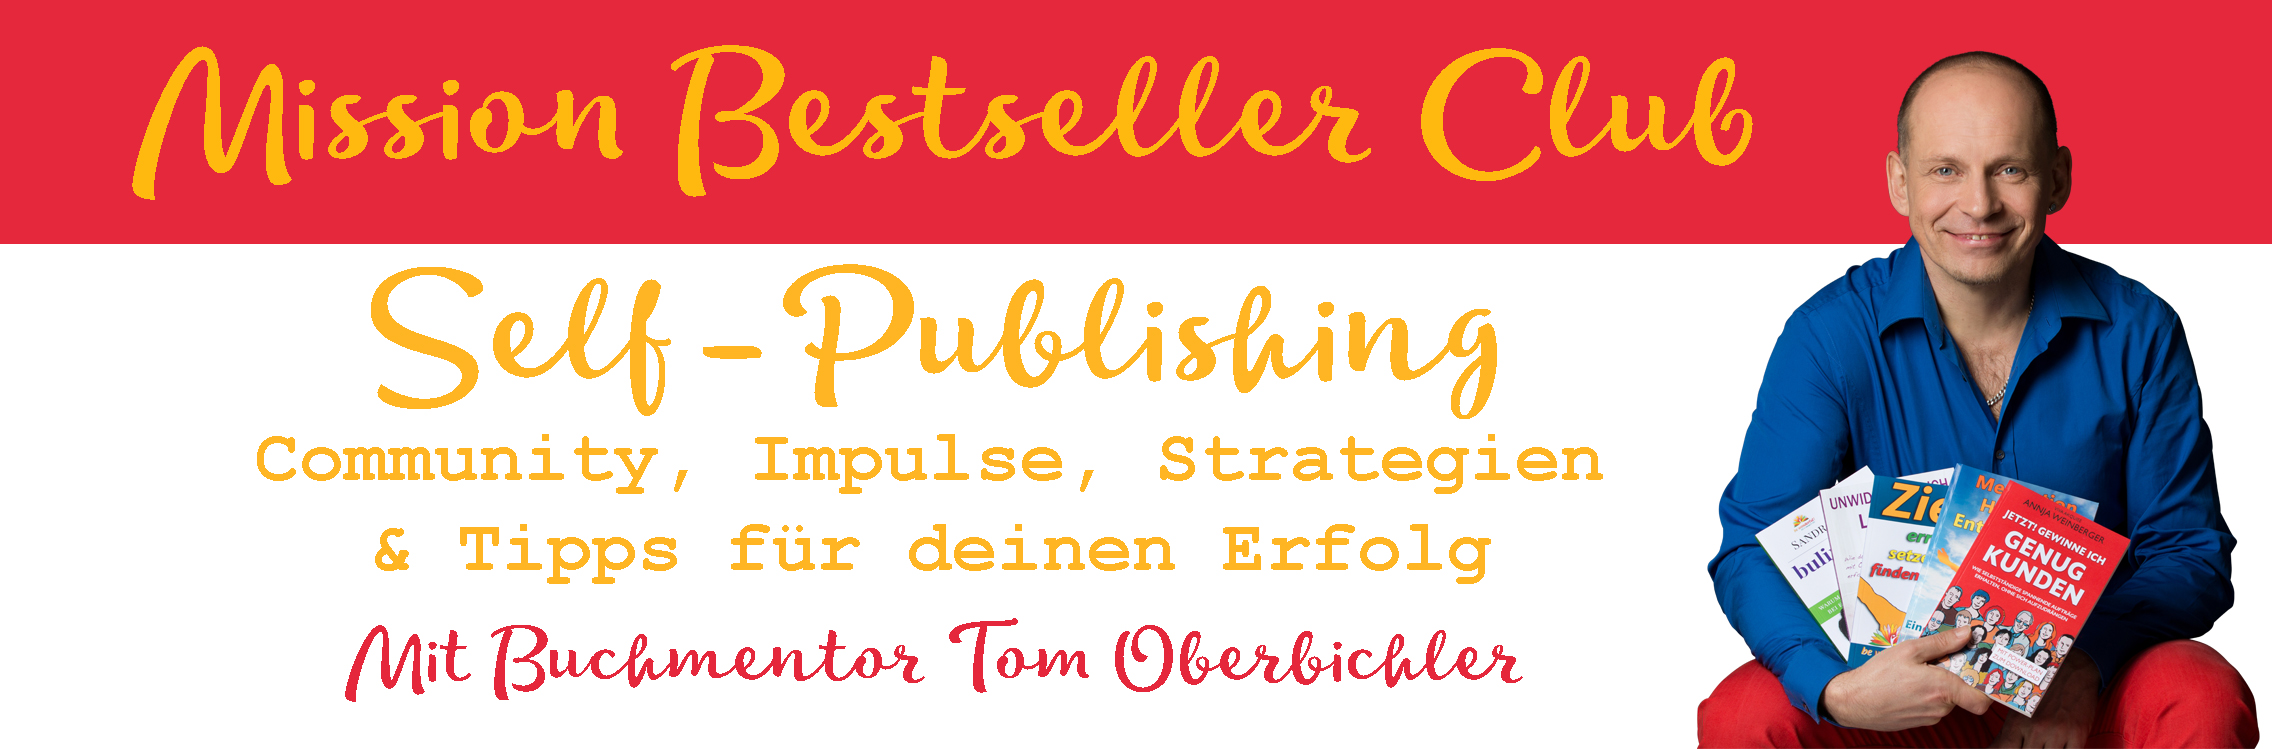 Der Mission Bestseller Club, die Self-Publishing-Community mit Tom Oberbichler